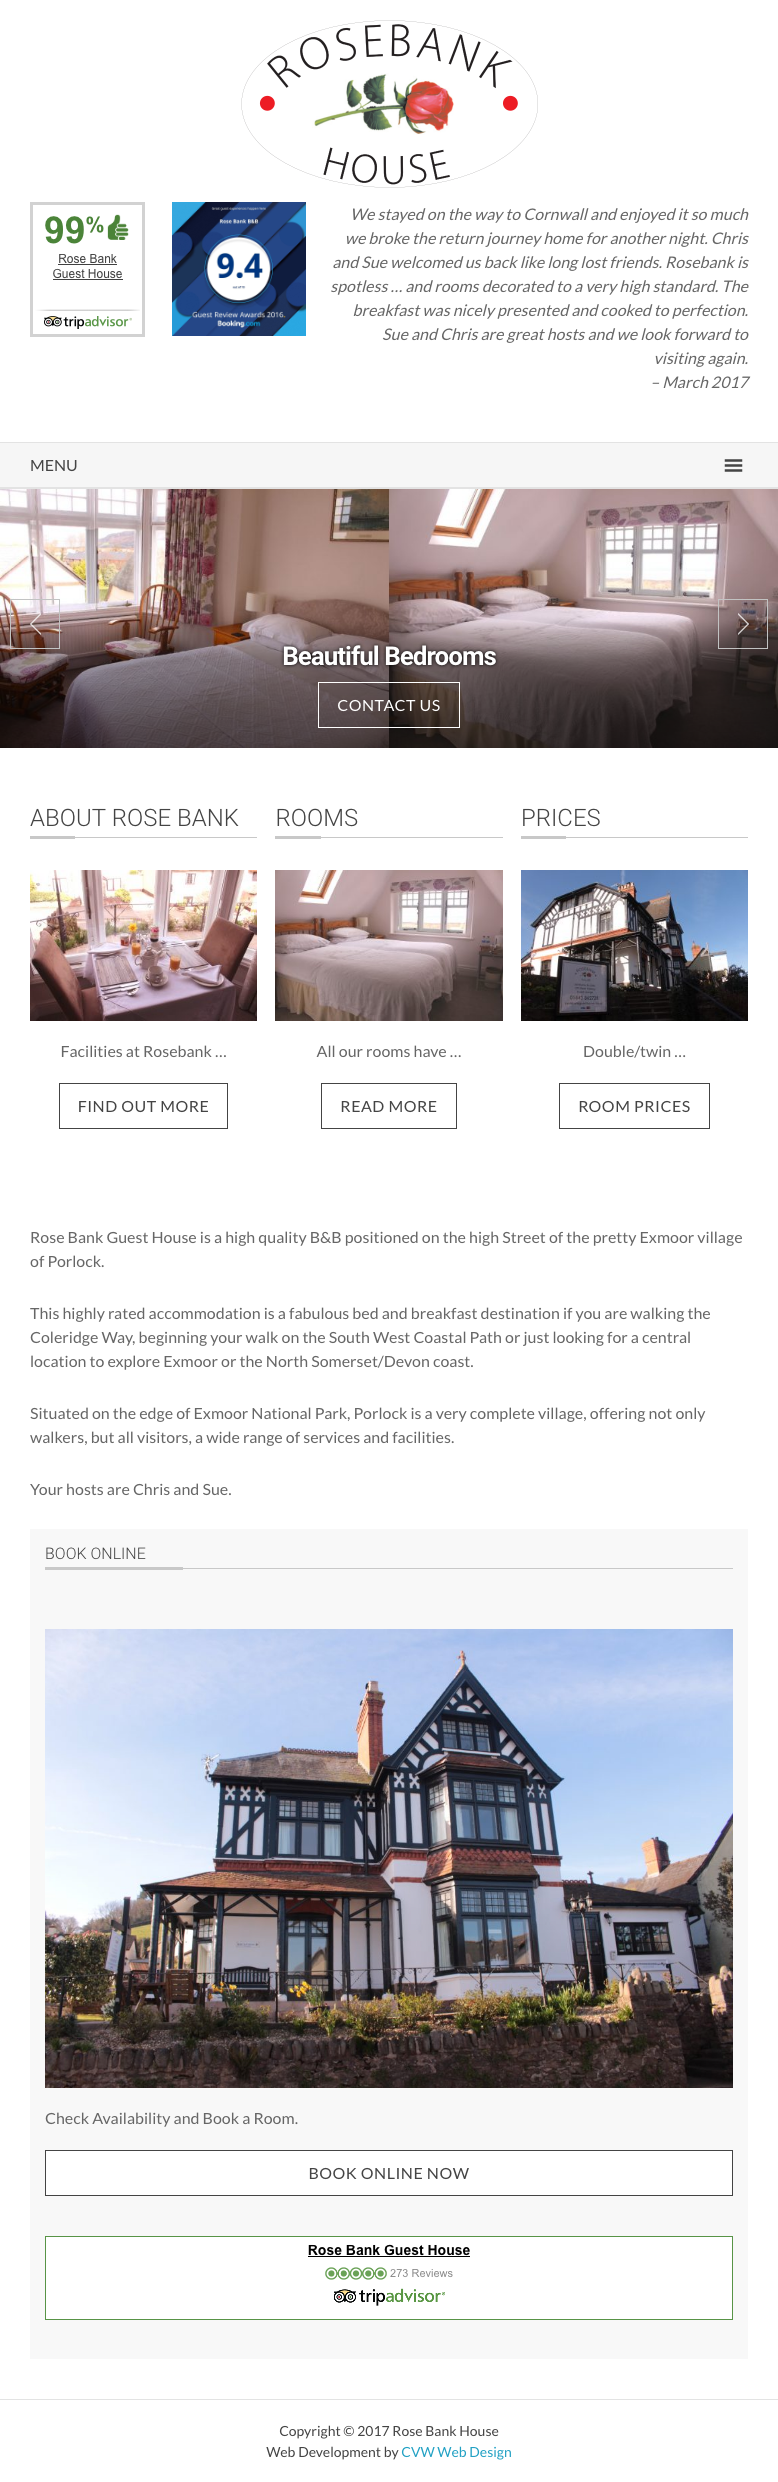 Rosebank House website screenshot